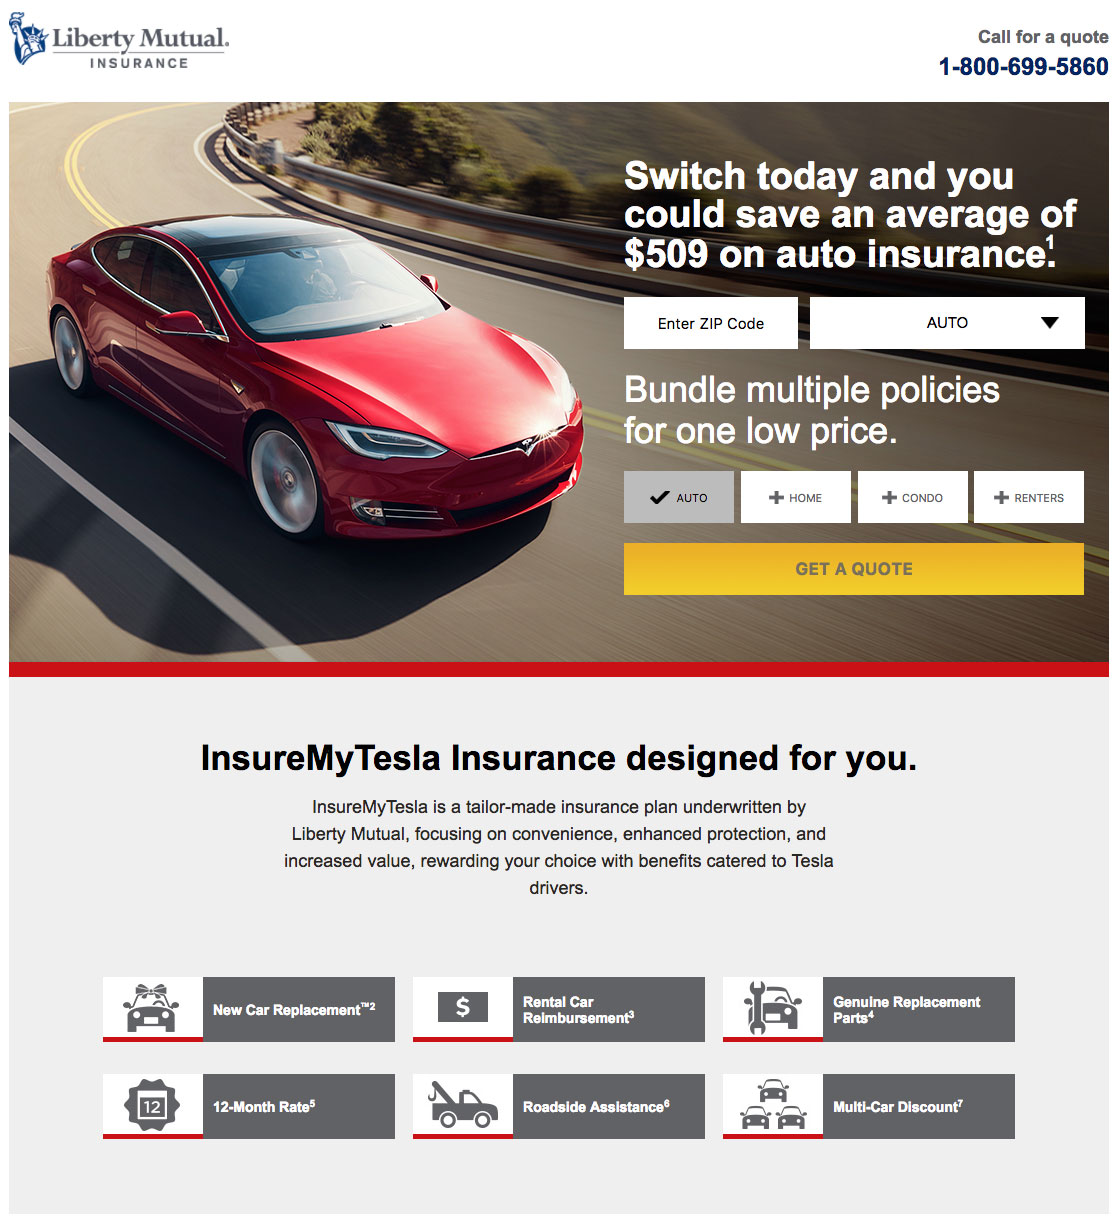 Liberty Mutual Auto Quote Liberty Mutual Still Has A Long Way To Go To Be The Go To Insurer